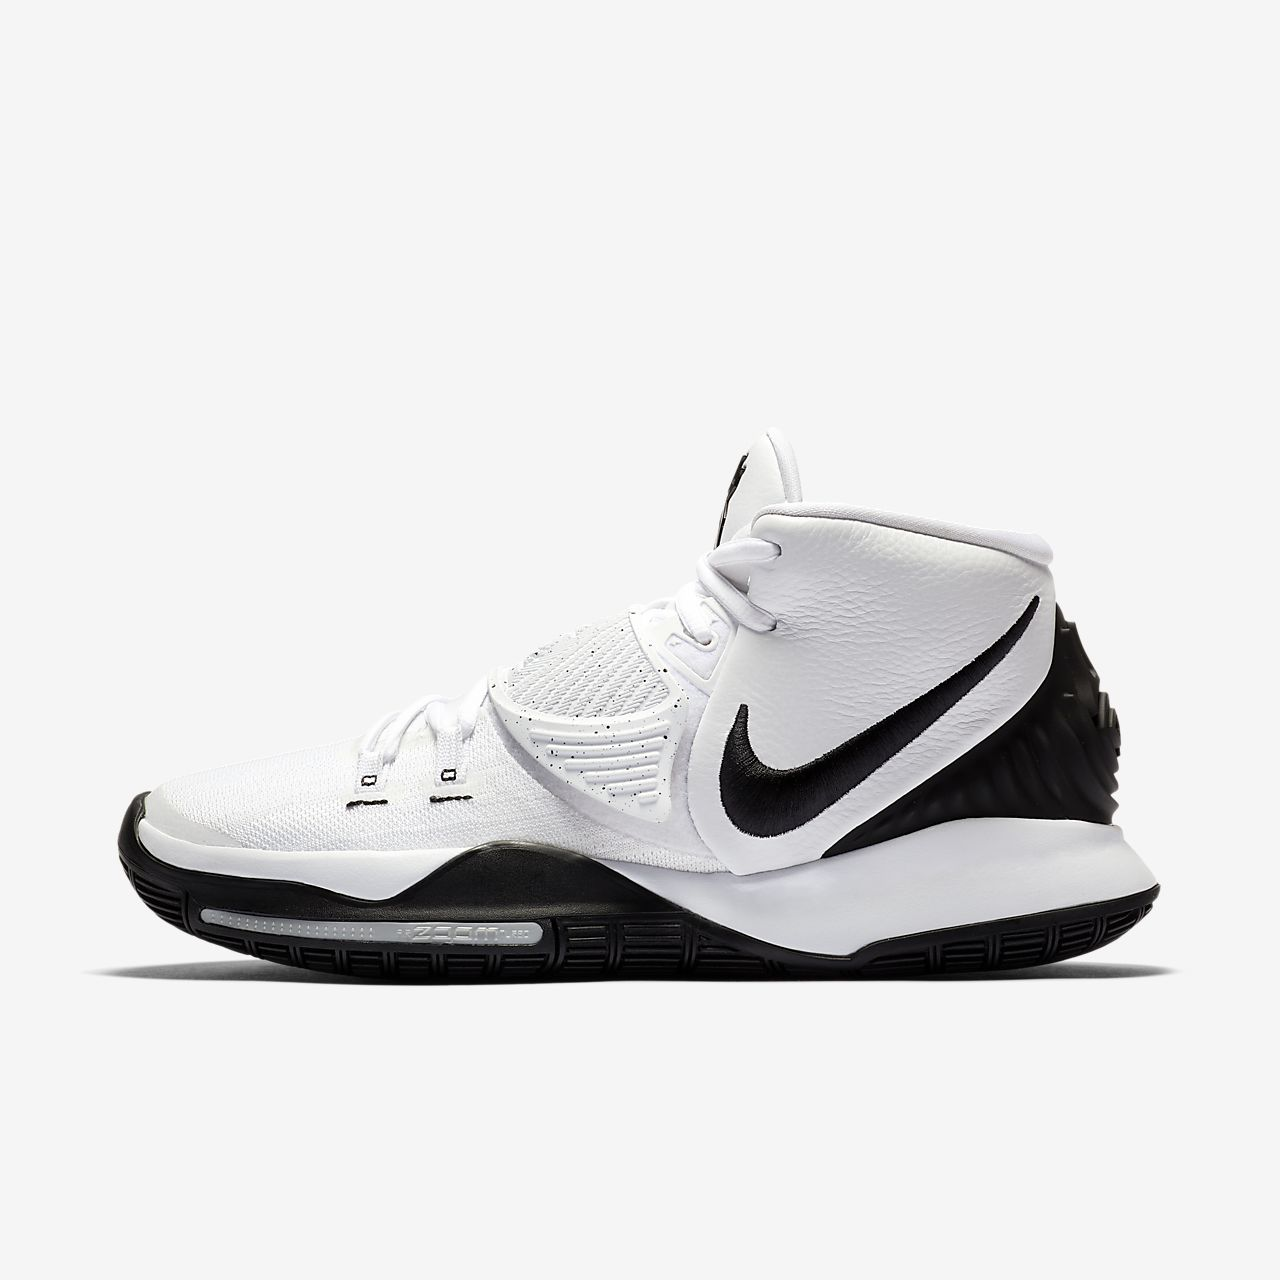 17 Best Shoes images | Shoes, Nike kyrie, Irving shoes